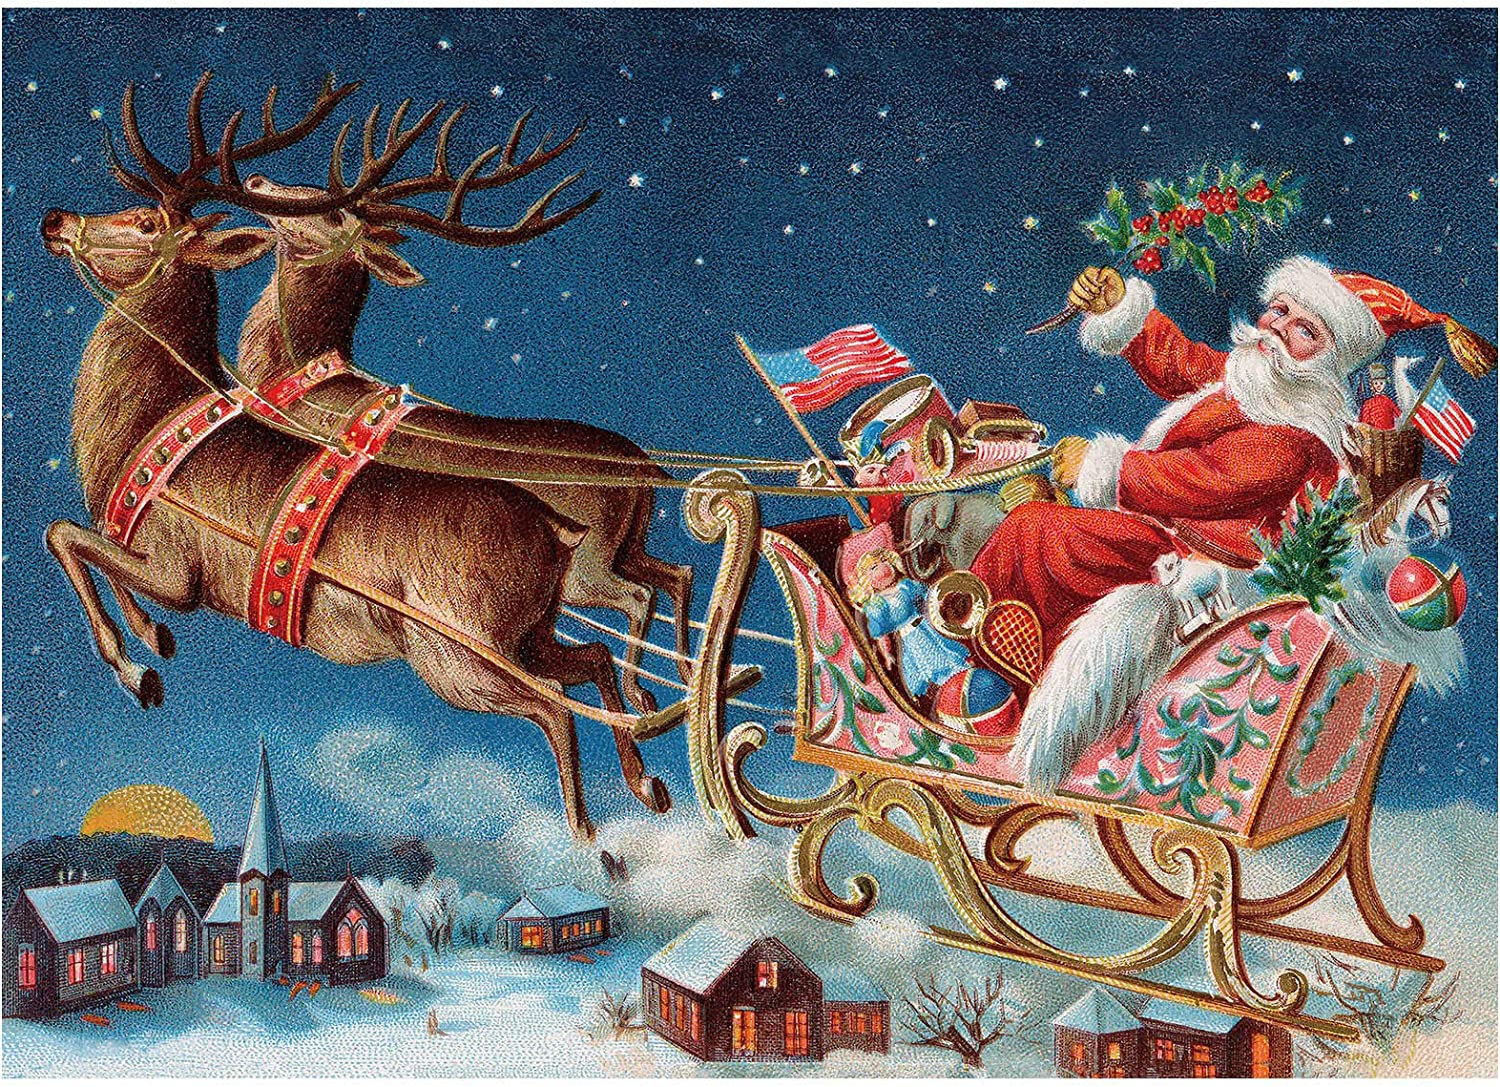 Premium Recyclable Materials Family Jigsaw Puzzle /& Fact Poster 27.5 x 19.7 in Santa Christmas Puzzle Christmas Puzzles for Adults 1000 Piece Snow Happy Holiday Puzzle Skill Level: Difficult